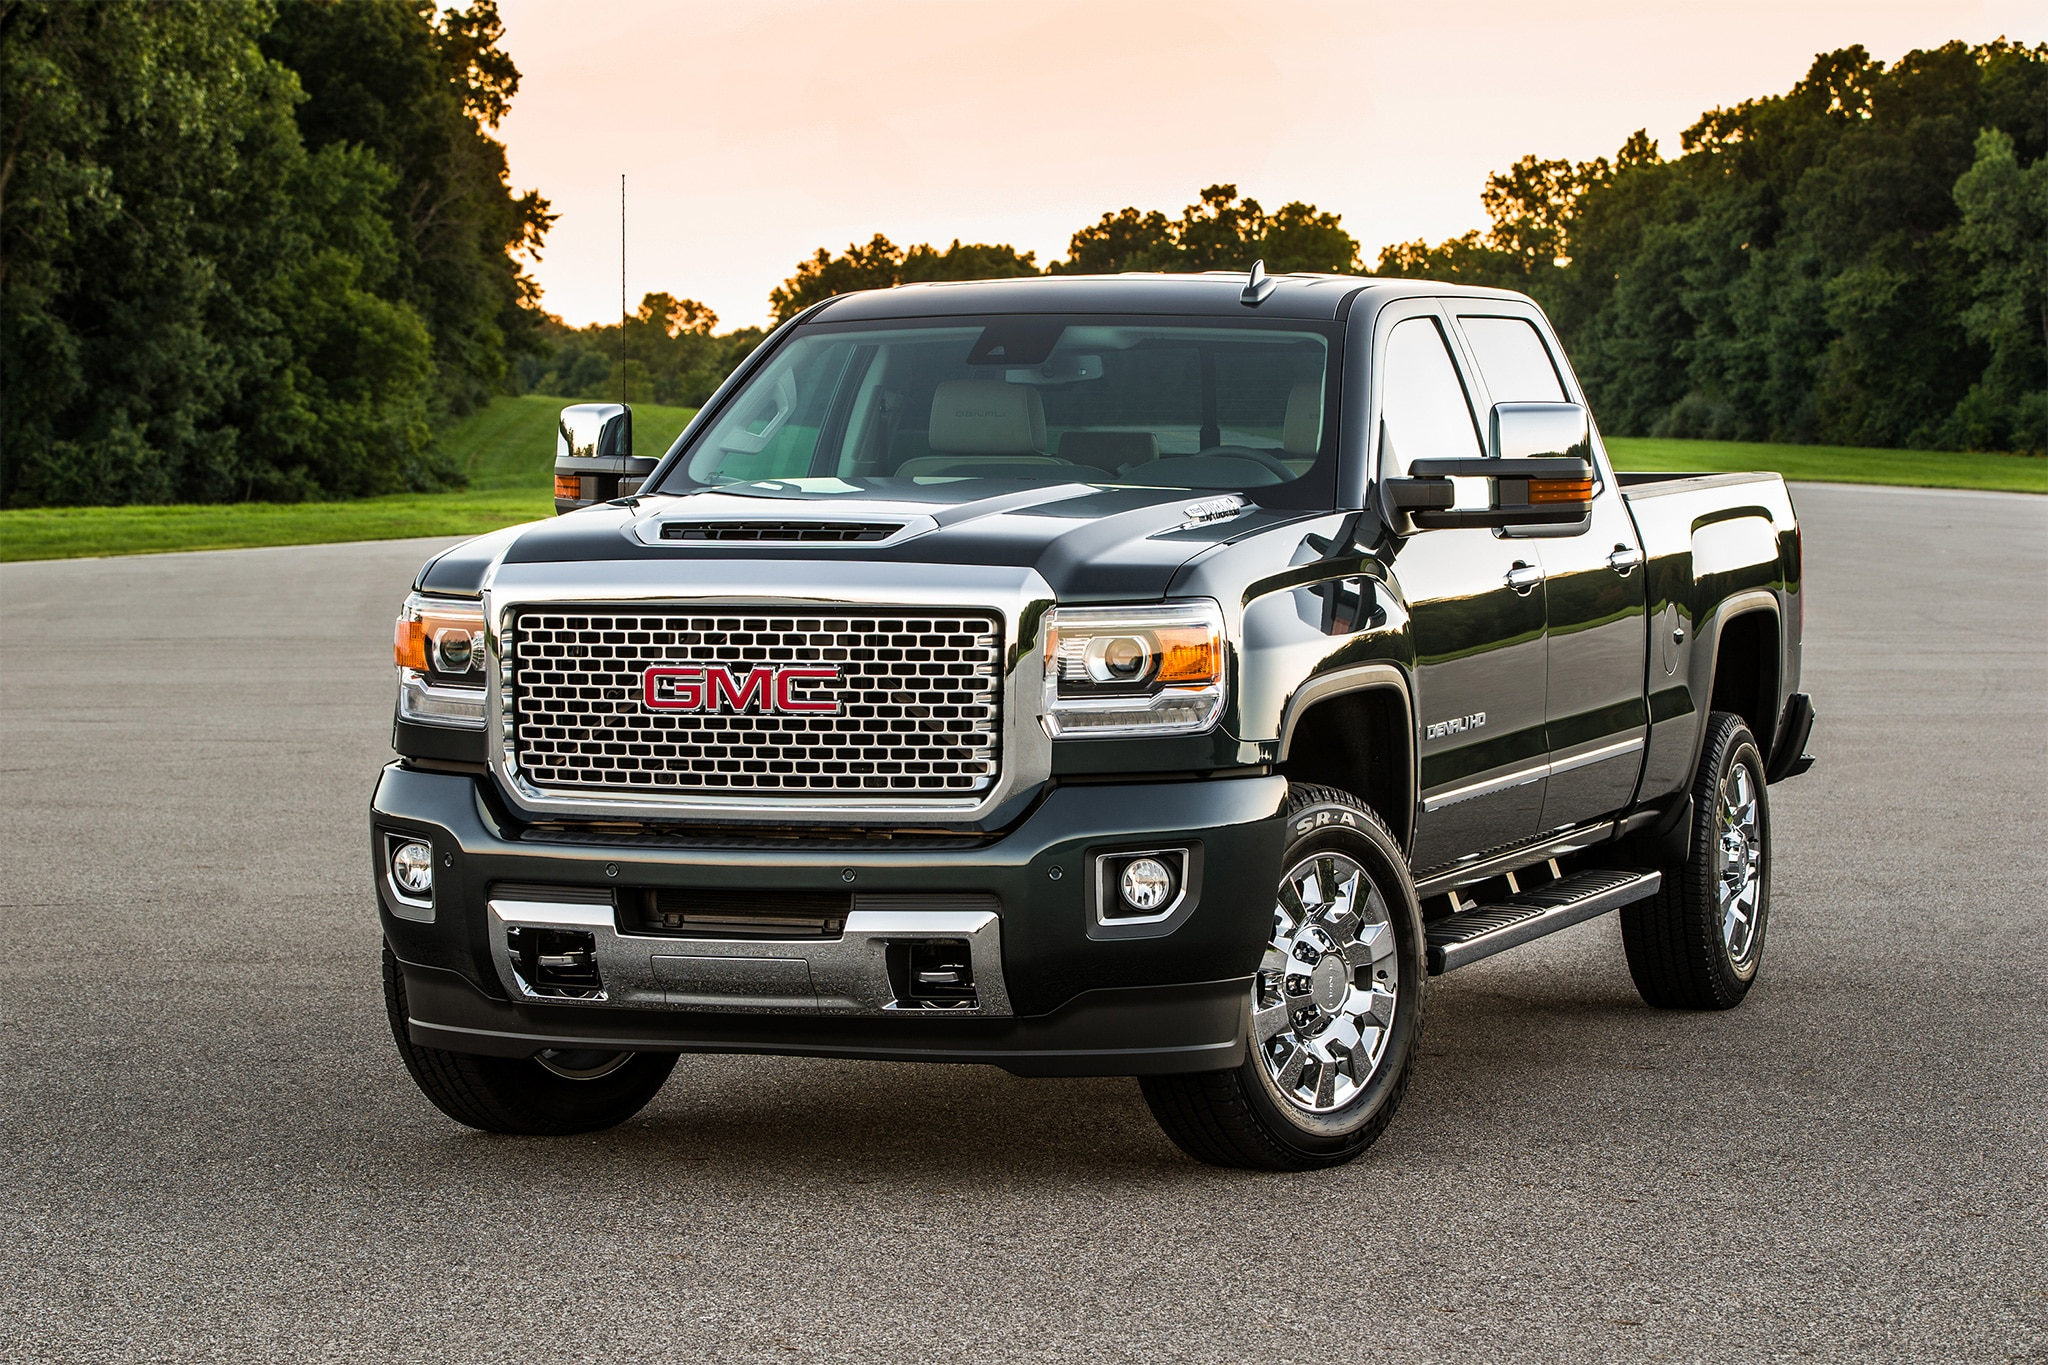 2016 Duramax Specs >> 2017 GMC Sierra HD All Terrain X Brings High Torque to the Trails | Automobile Magazine